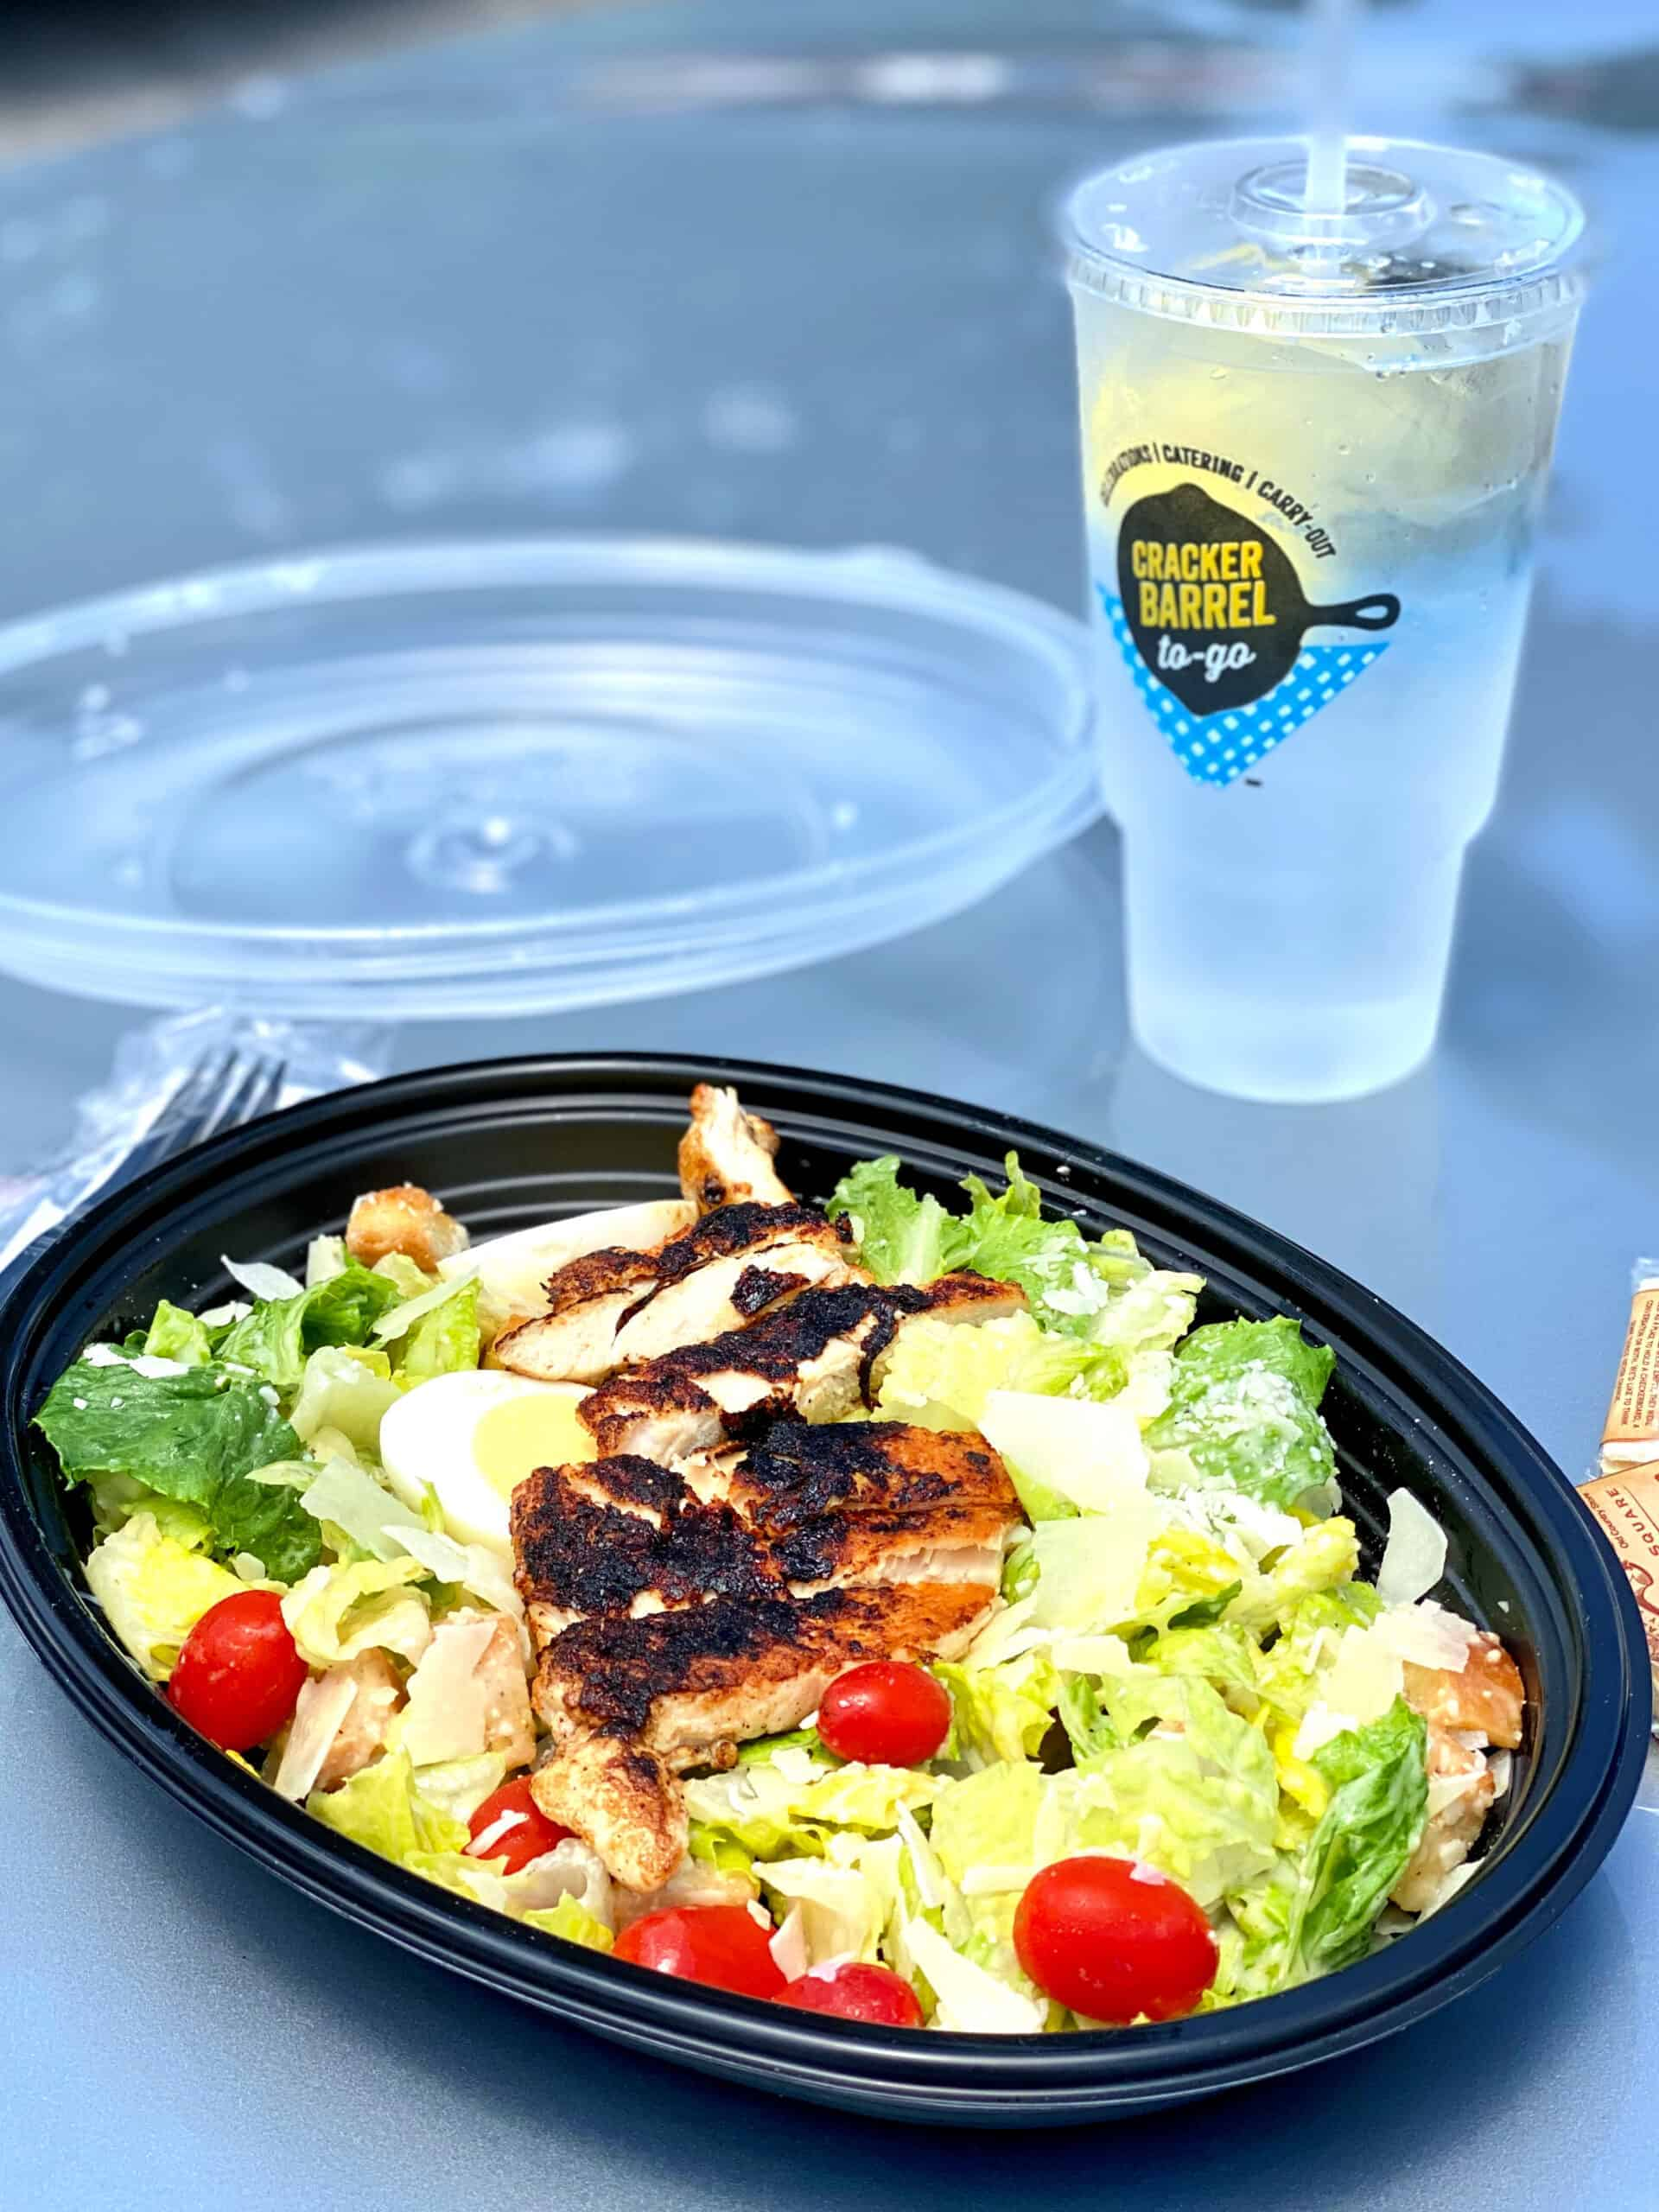 Southern Chicken Caesar Salad ordered to go